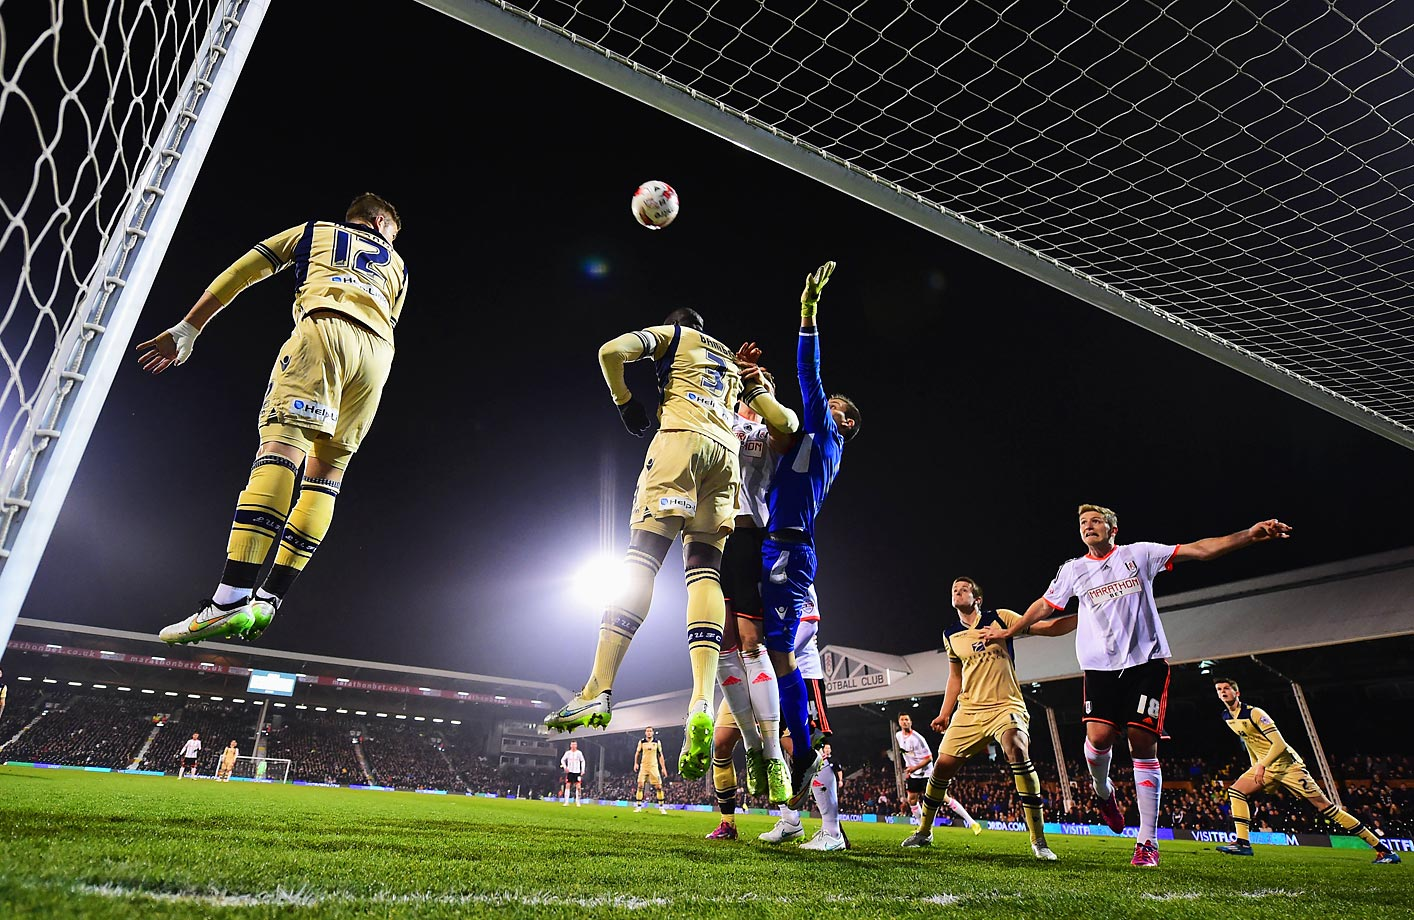 Souleymane Bamba (3) and goalkeeper Marco Silvestri of Leeds United defend their during the Sky Bet Championship match between Fulham and Leeds United in London.